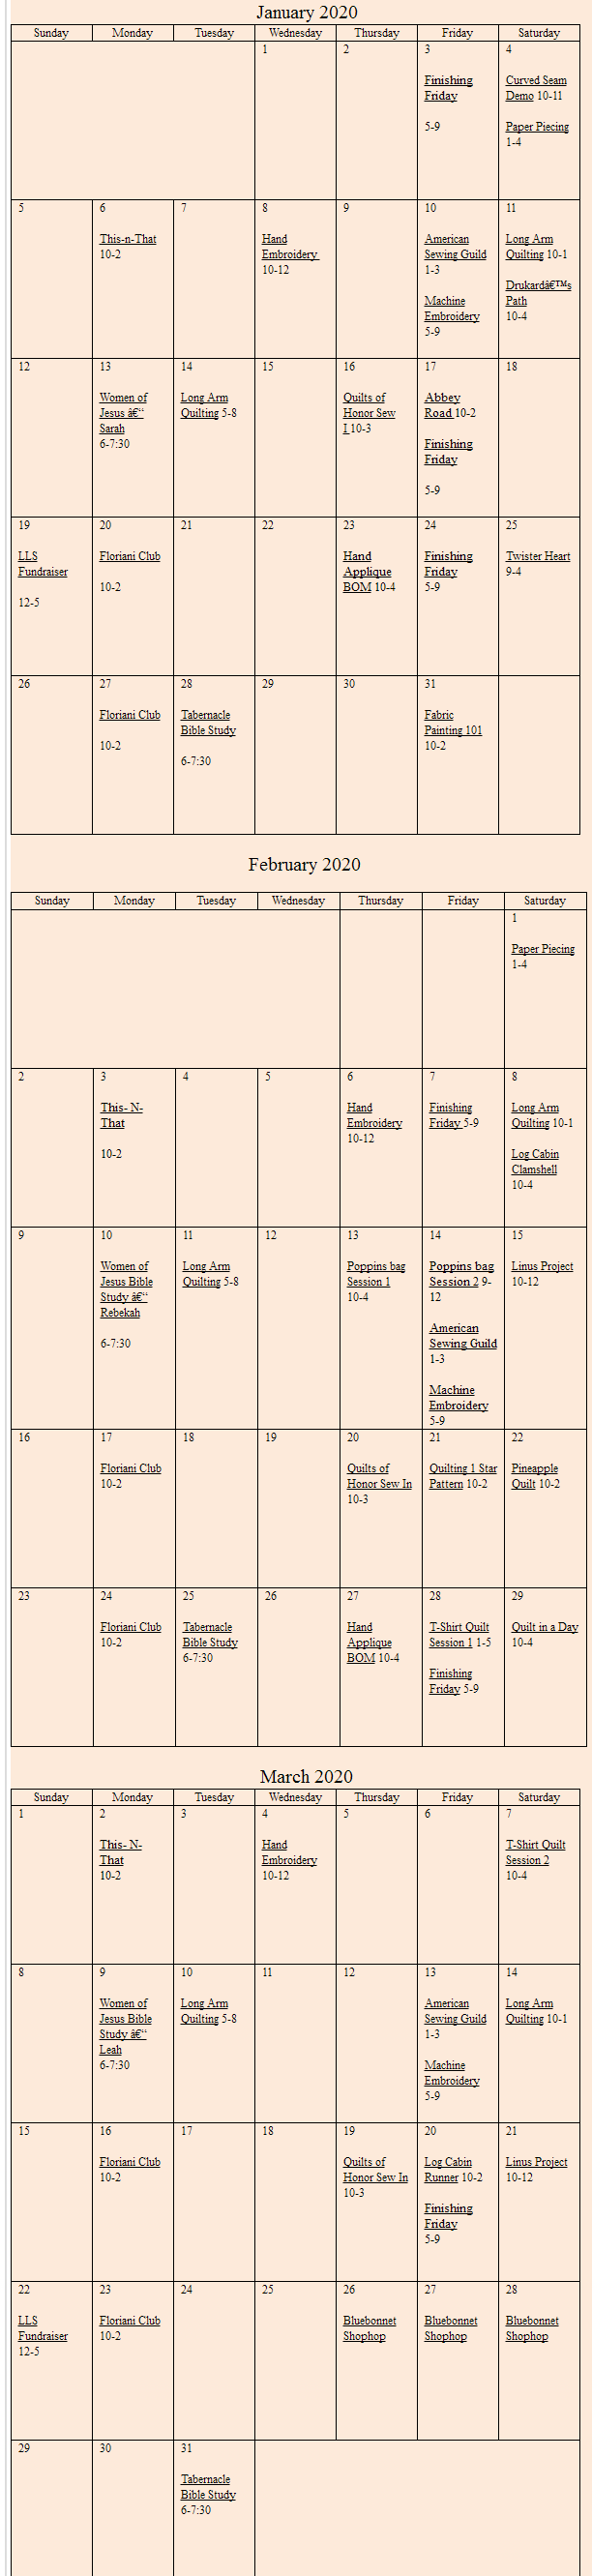 calendar-jan-march.png